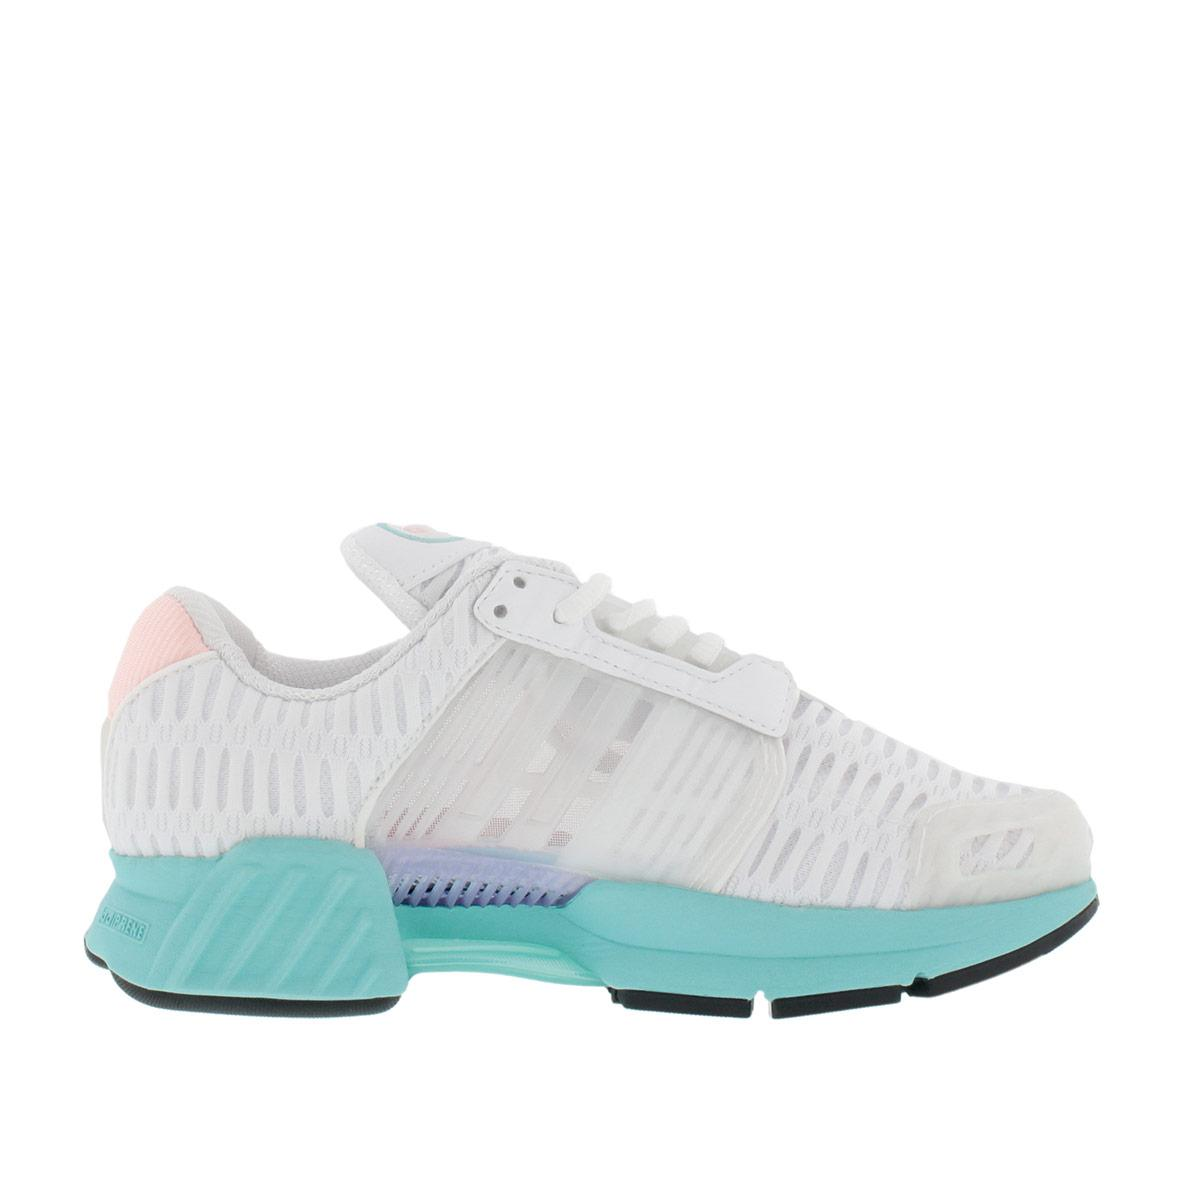 official photos 82cb0 f34c1 Adidas Originals Womens Climacool 1 Sneaker Whitemint in Whi